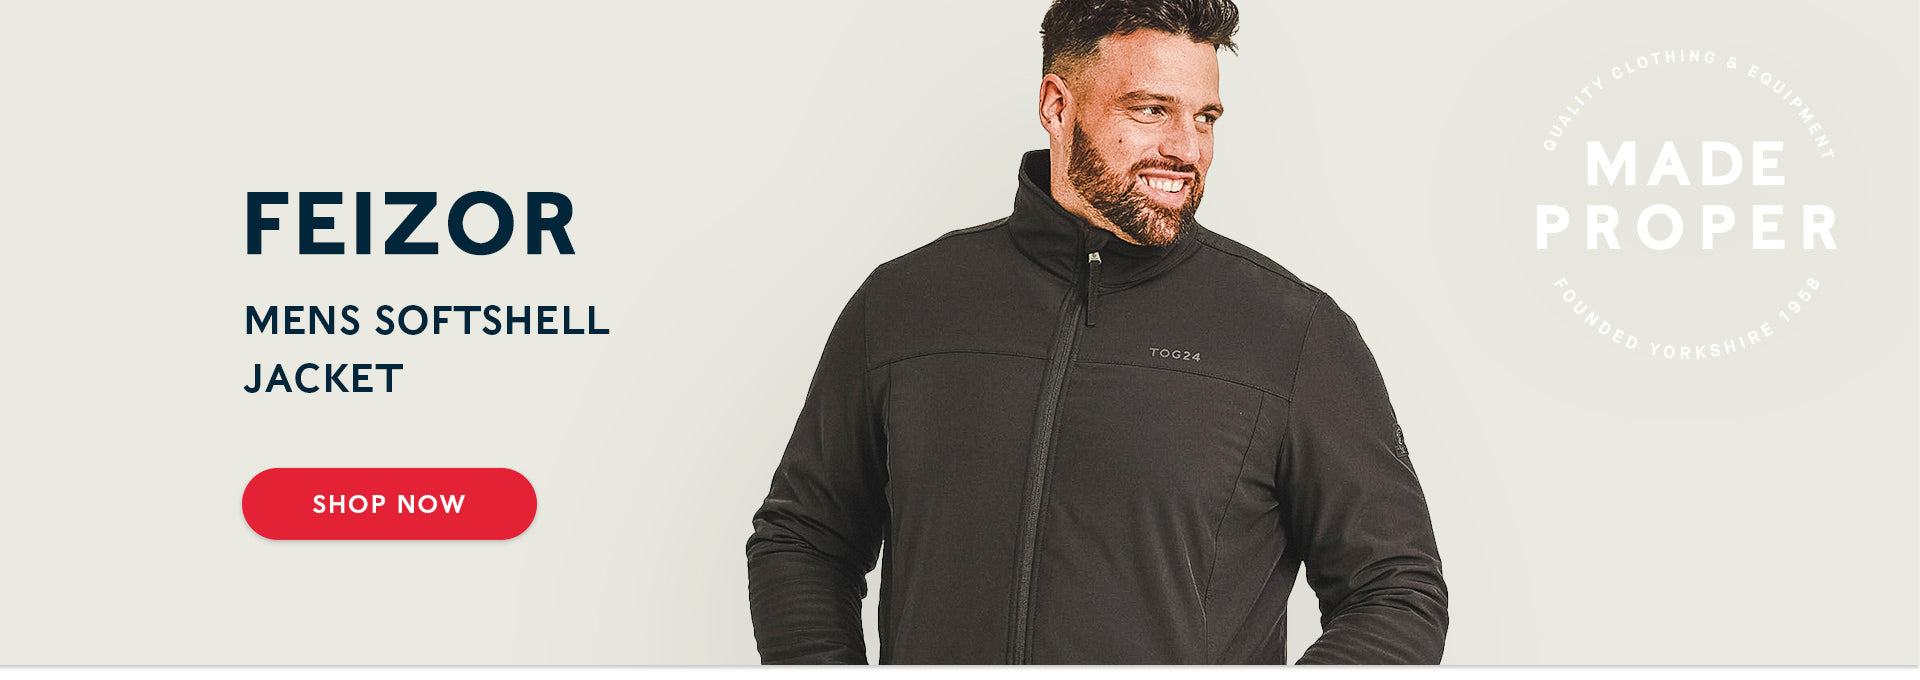 Feizor Mens Softshell Jacket | Shop now